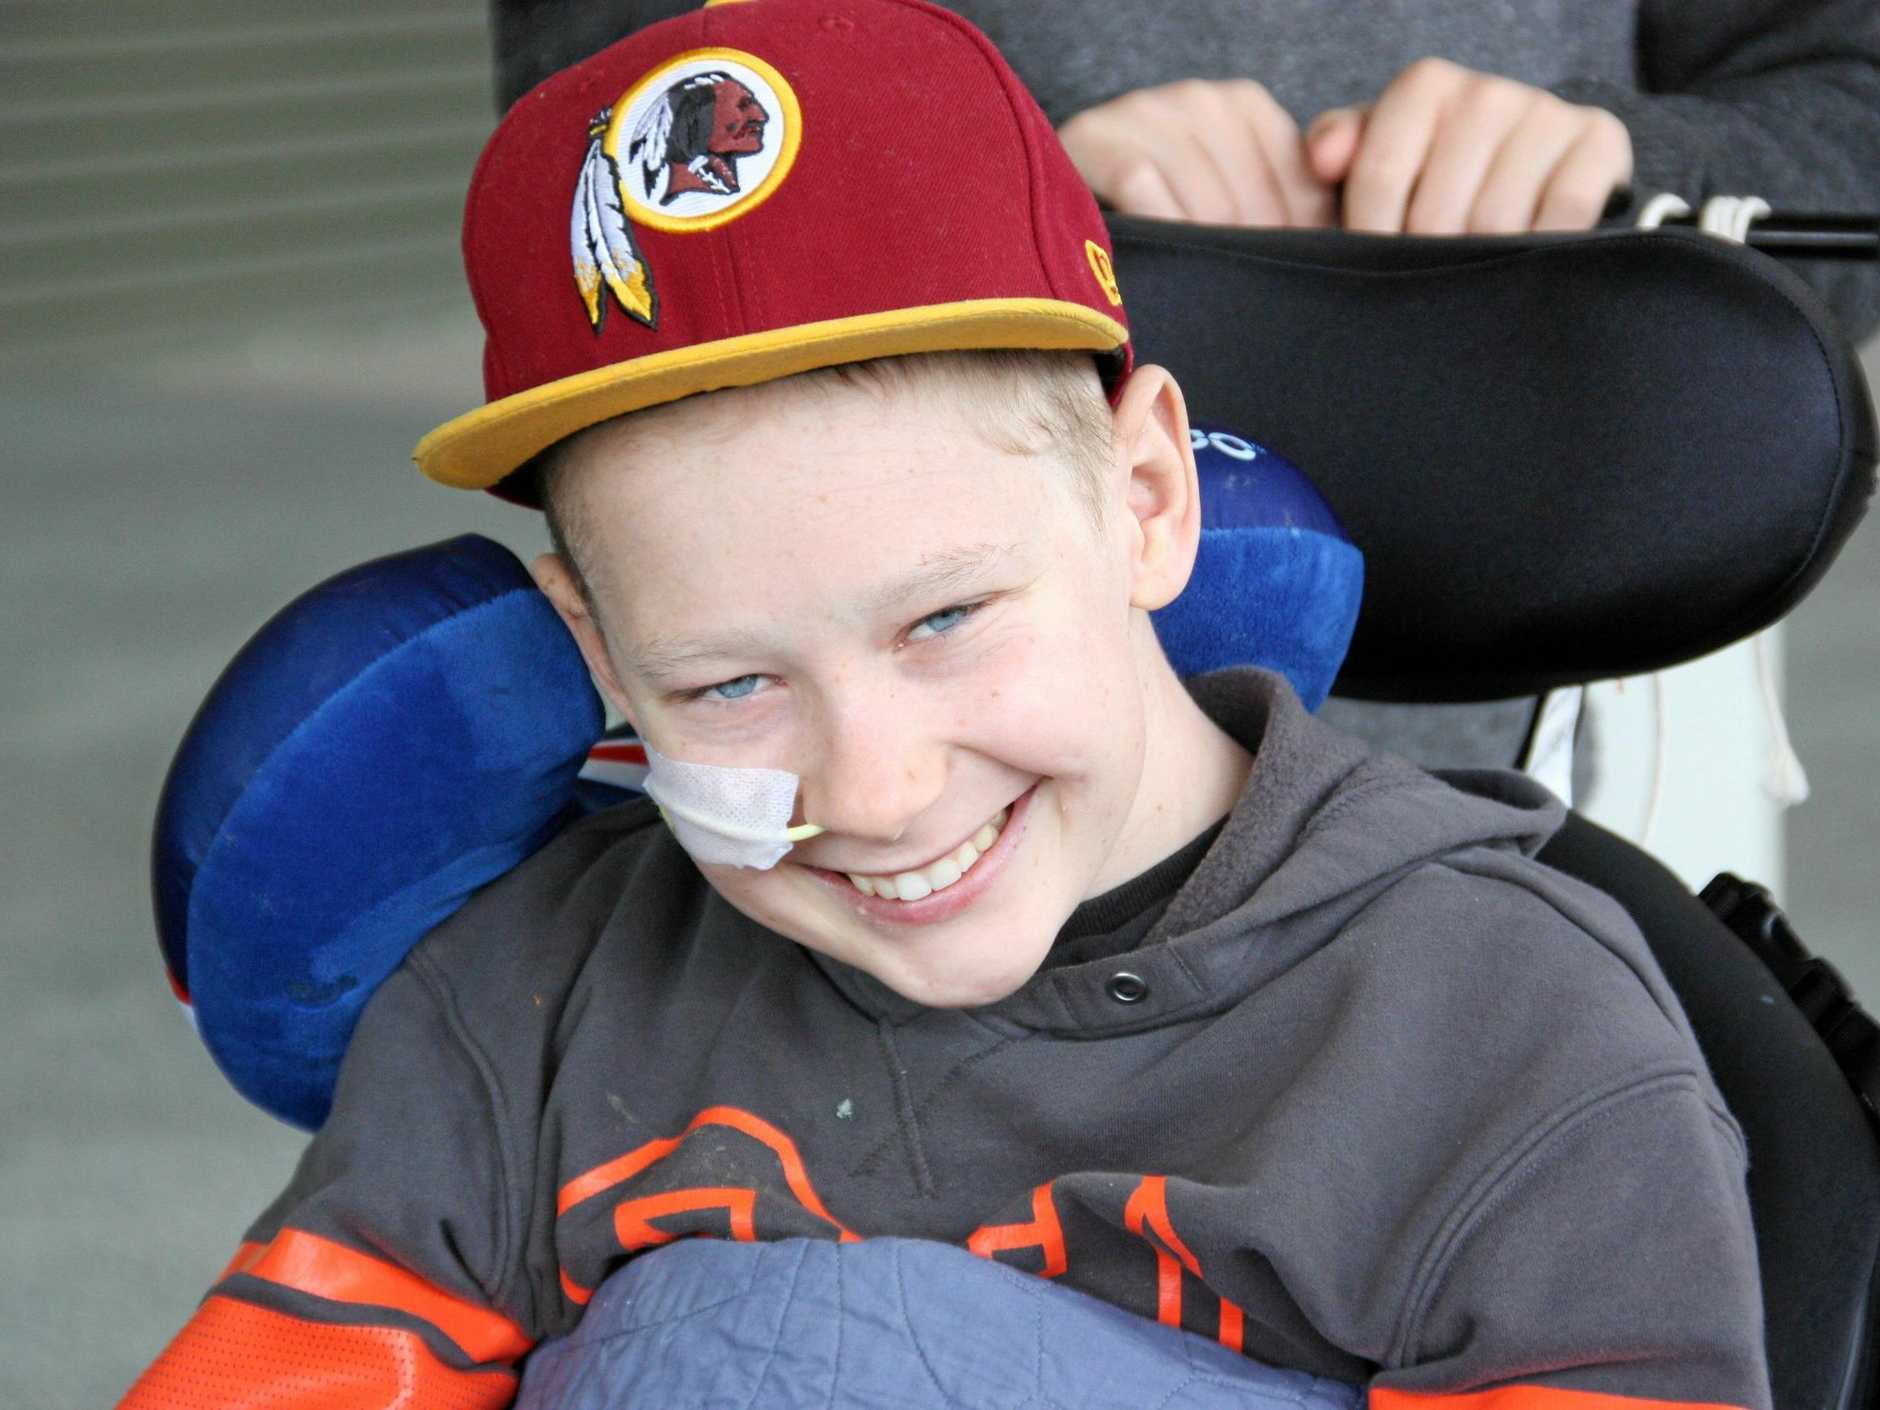 Lachlan Coghlan refuses to let a brain tumour get in the way of living life to the full.